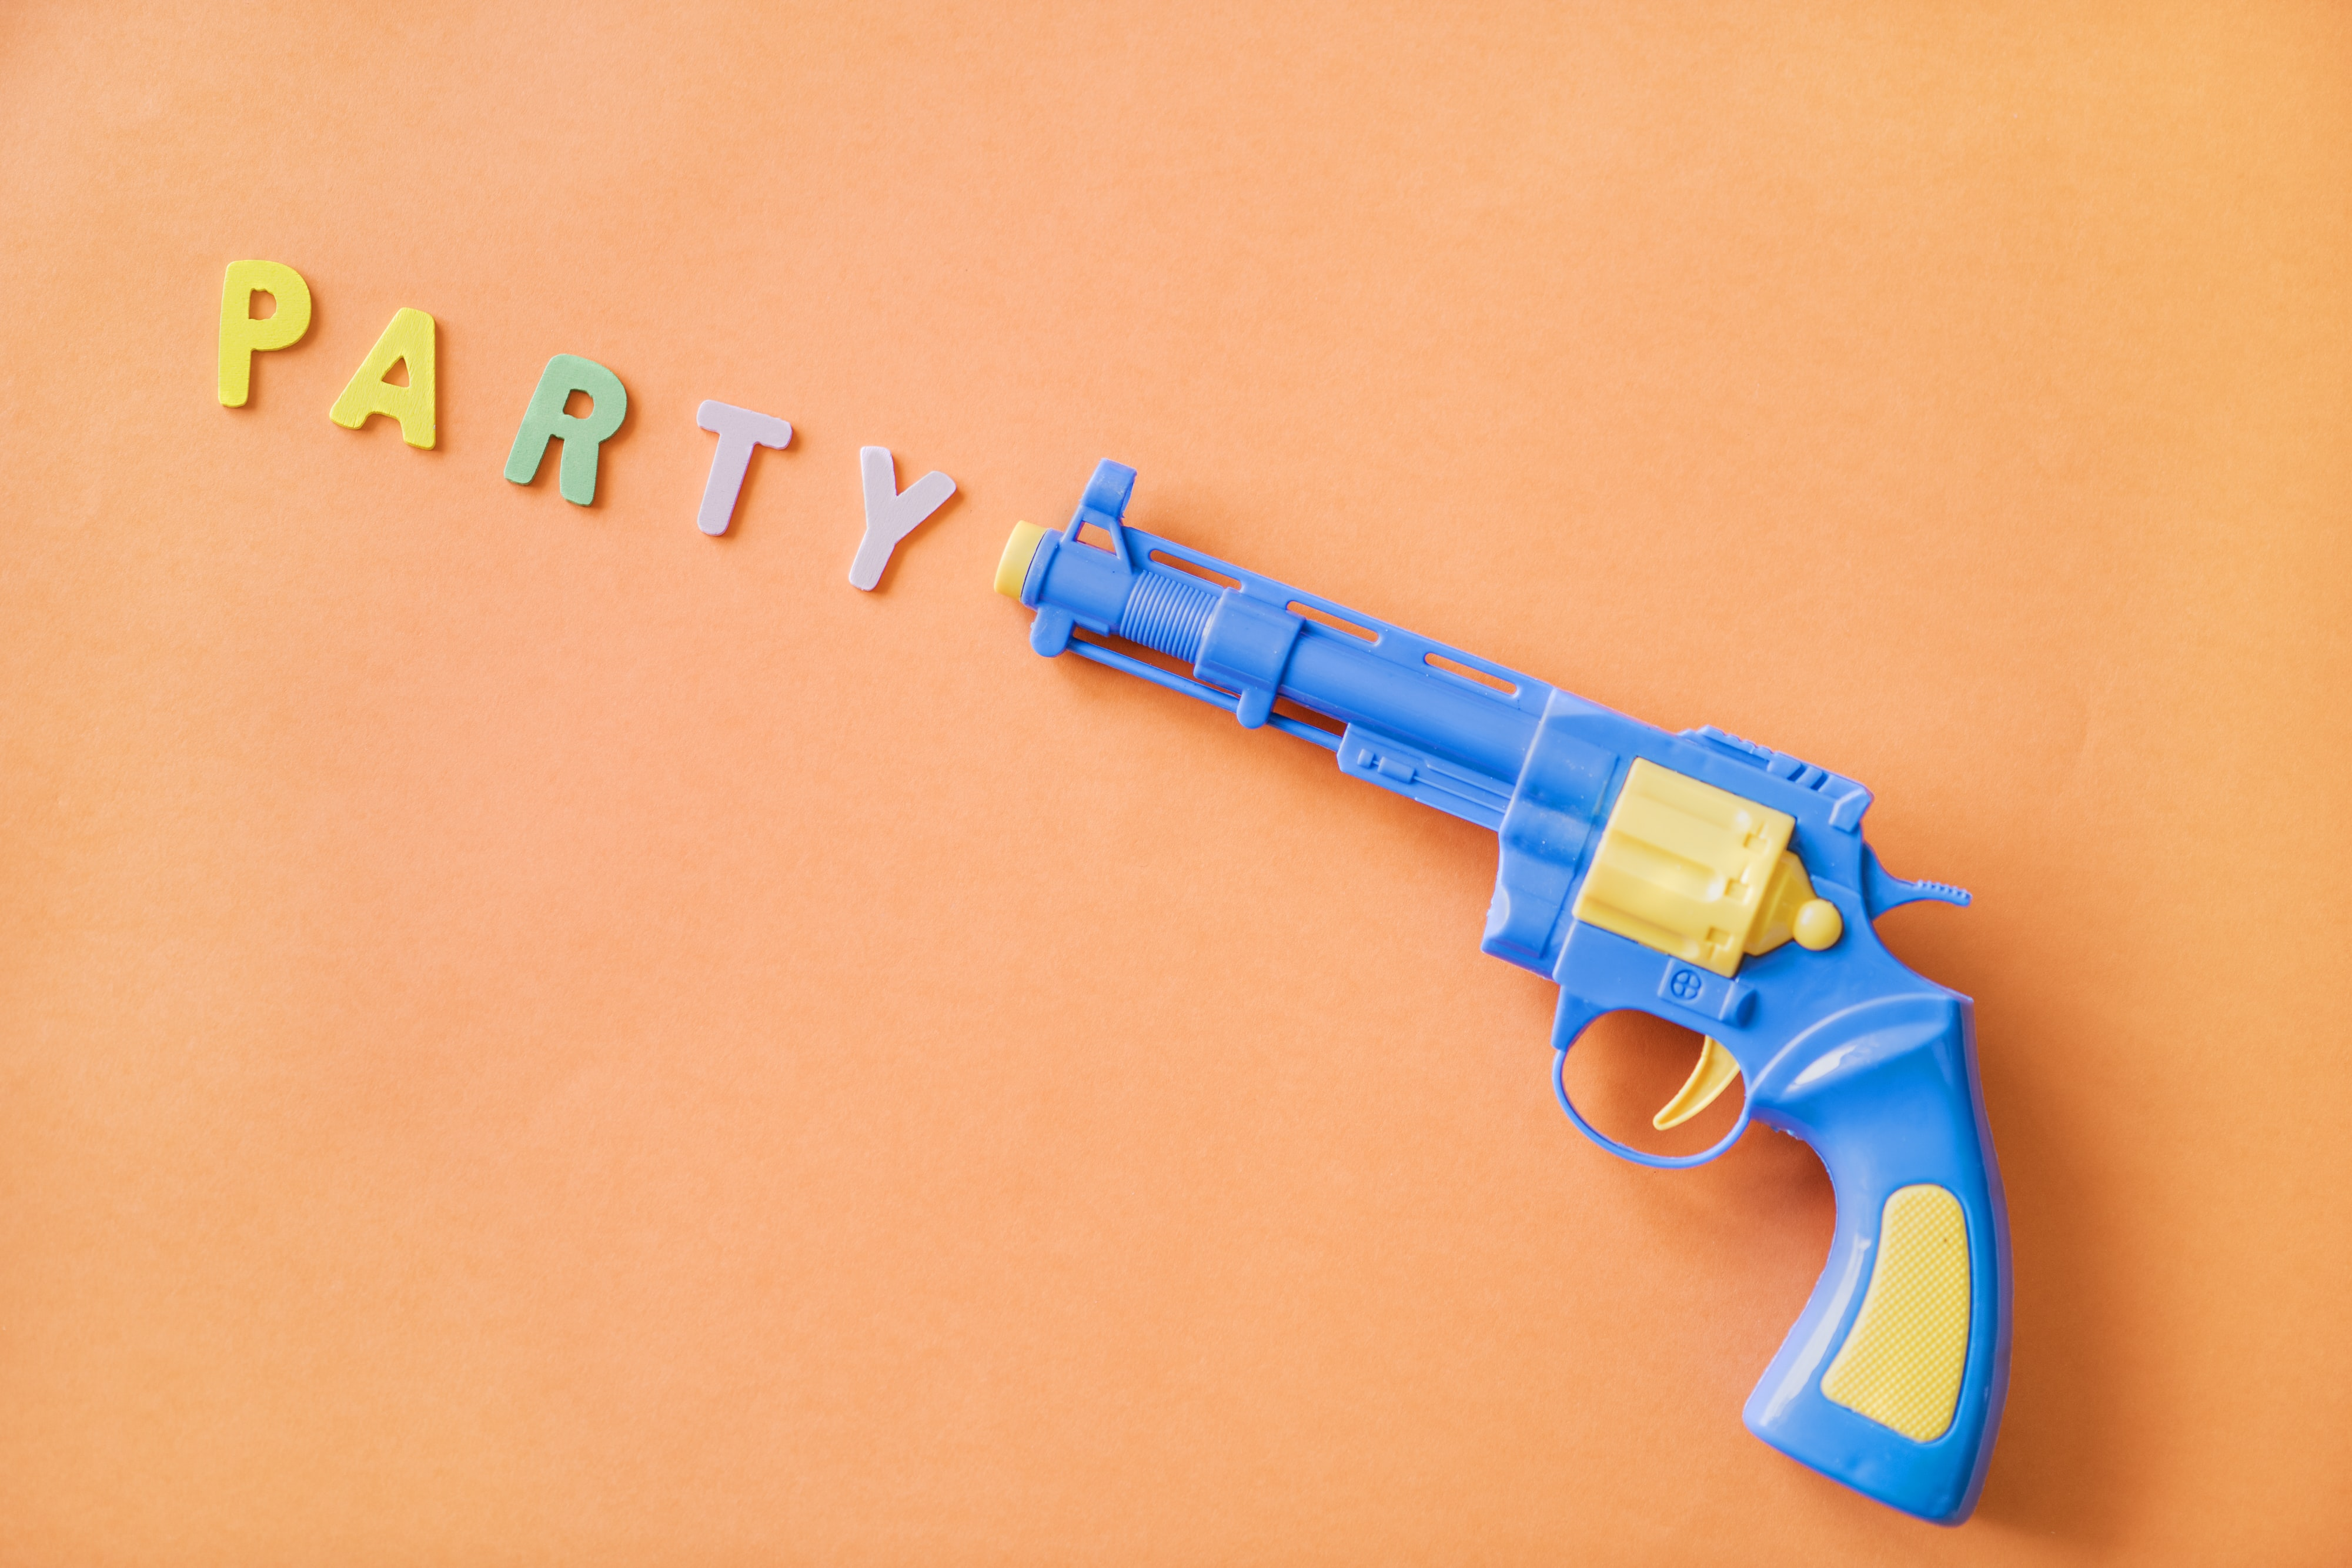 blue and yellow plastic revolver toy gun